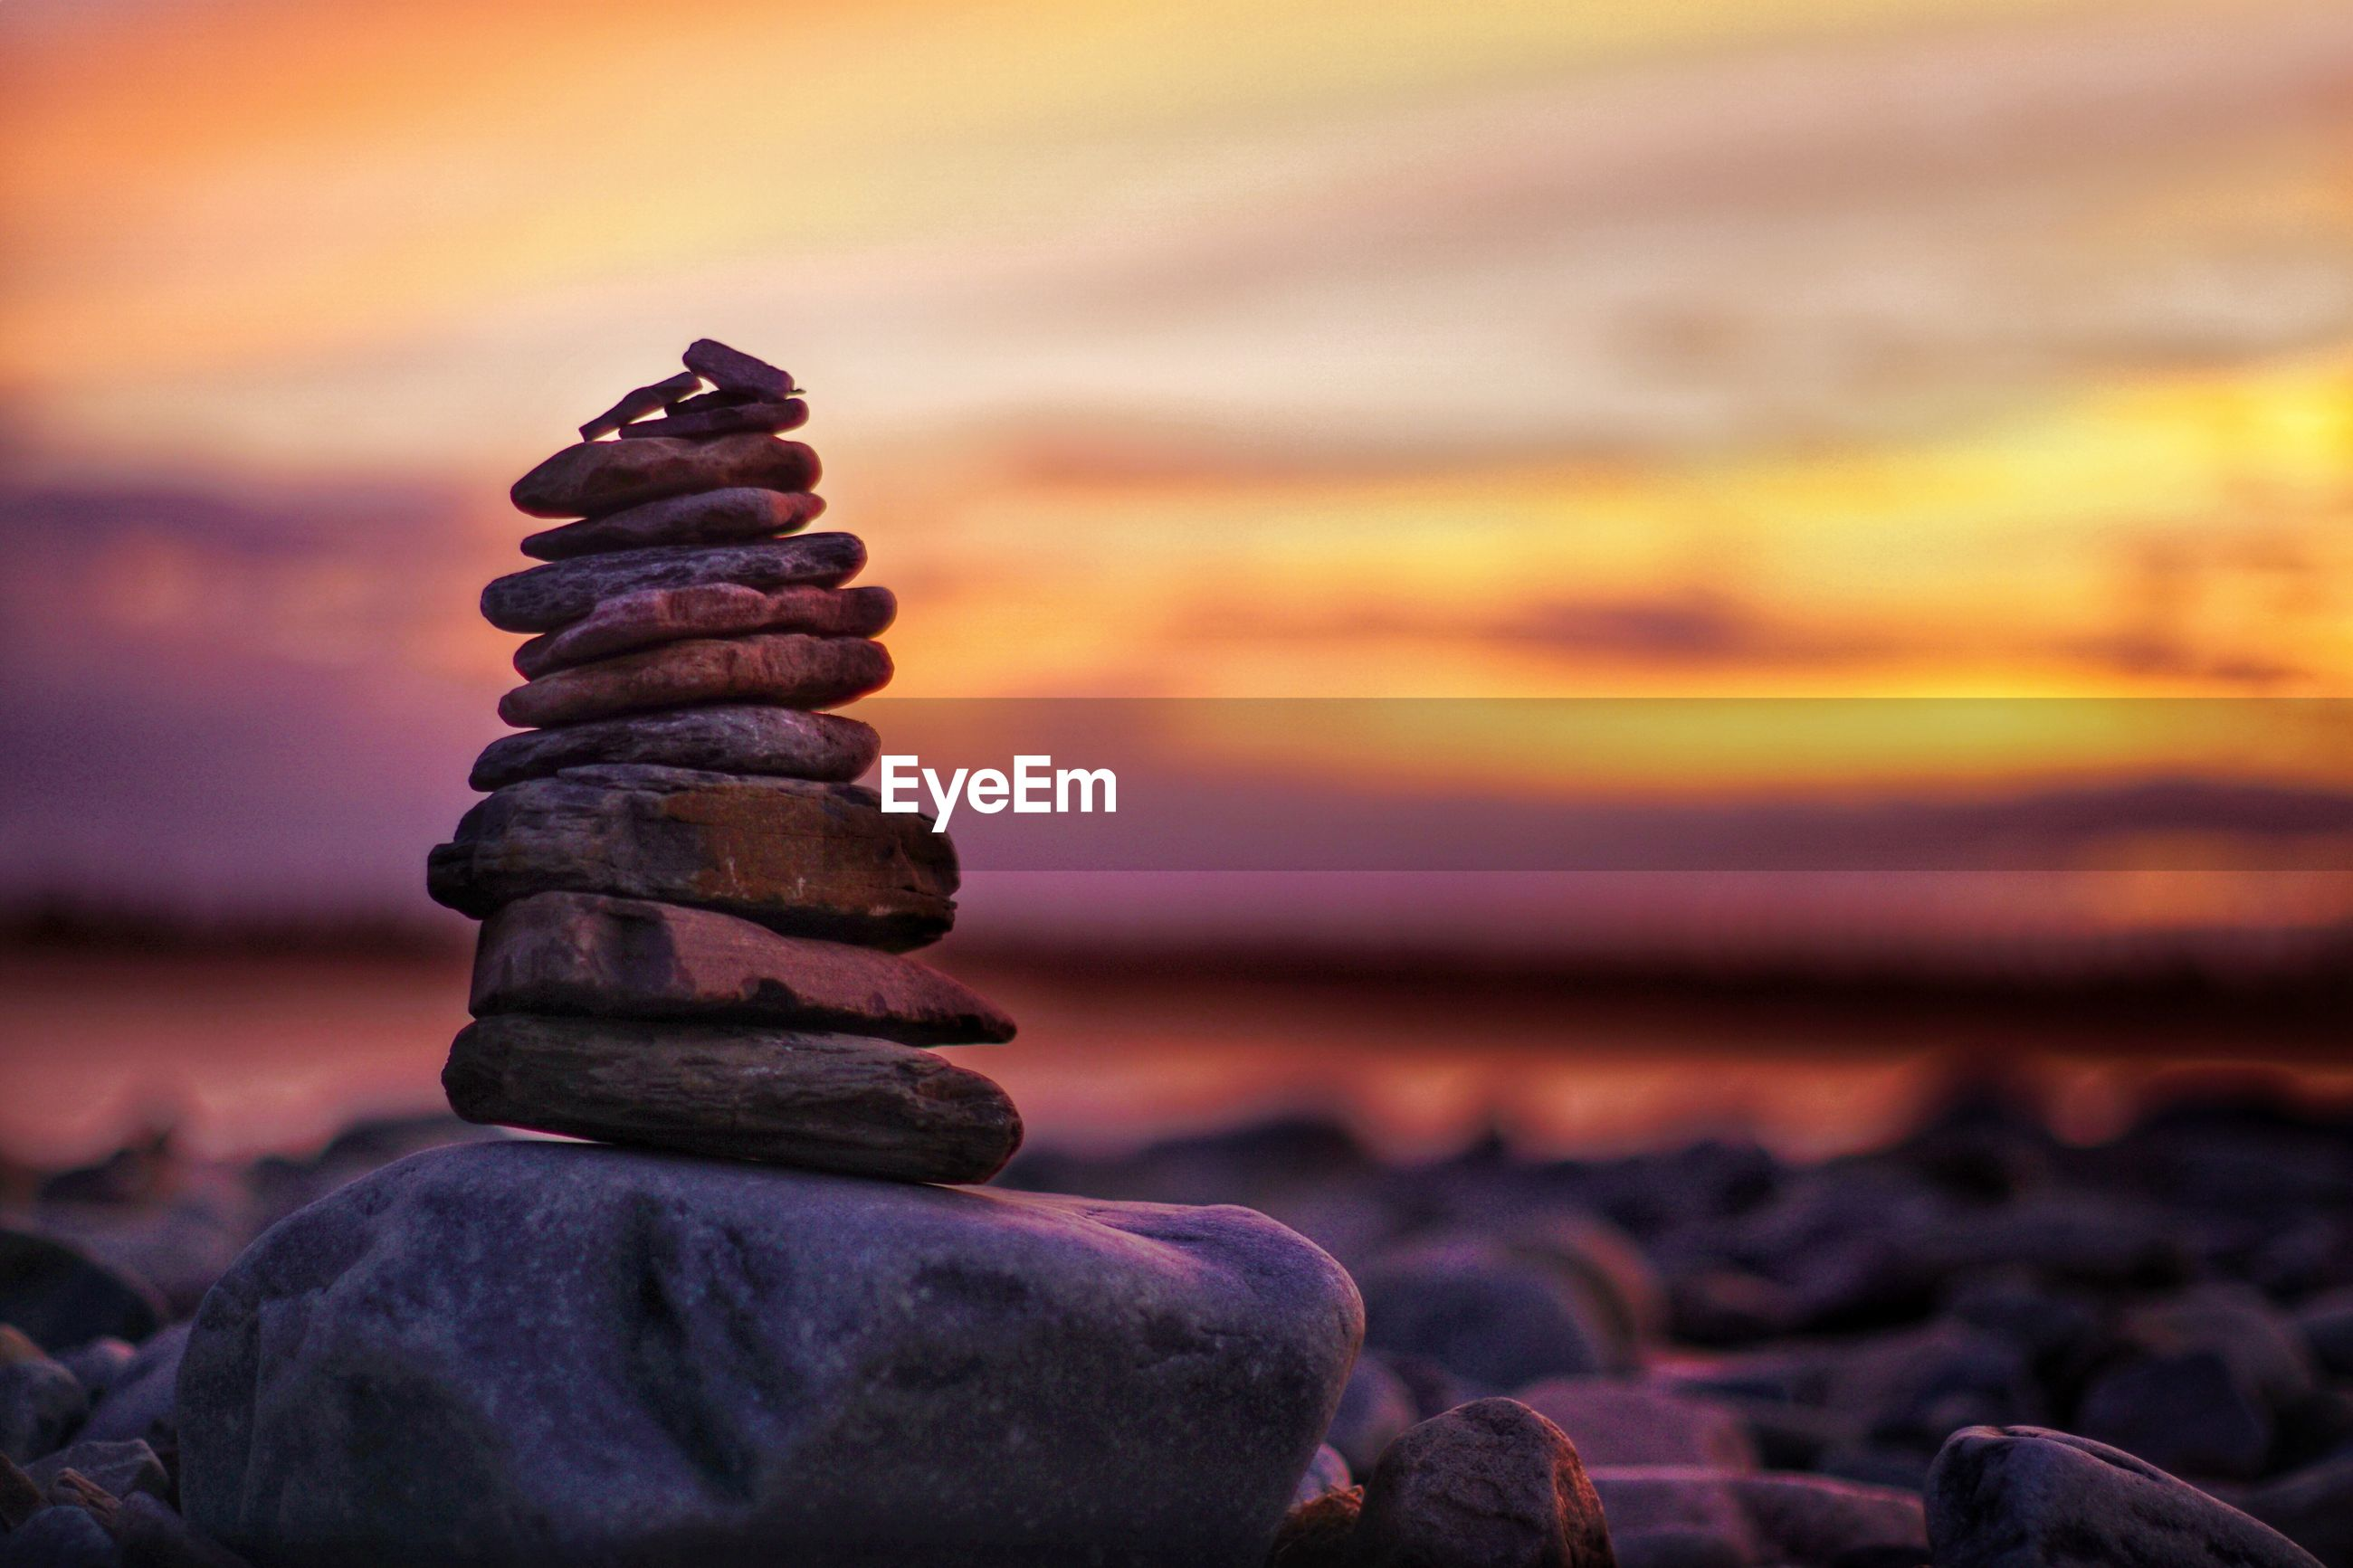 Stack of stones at beach against sea and sky during sunset